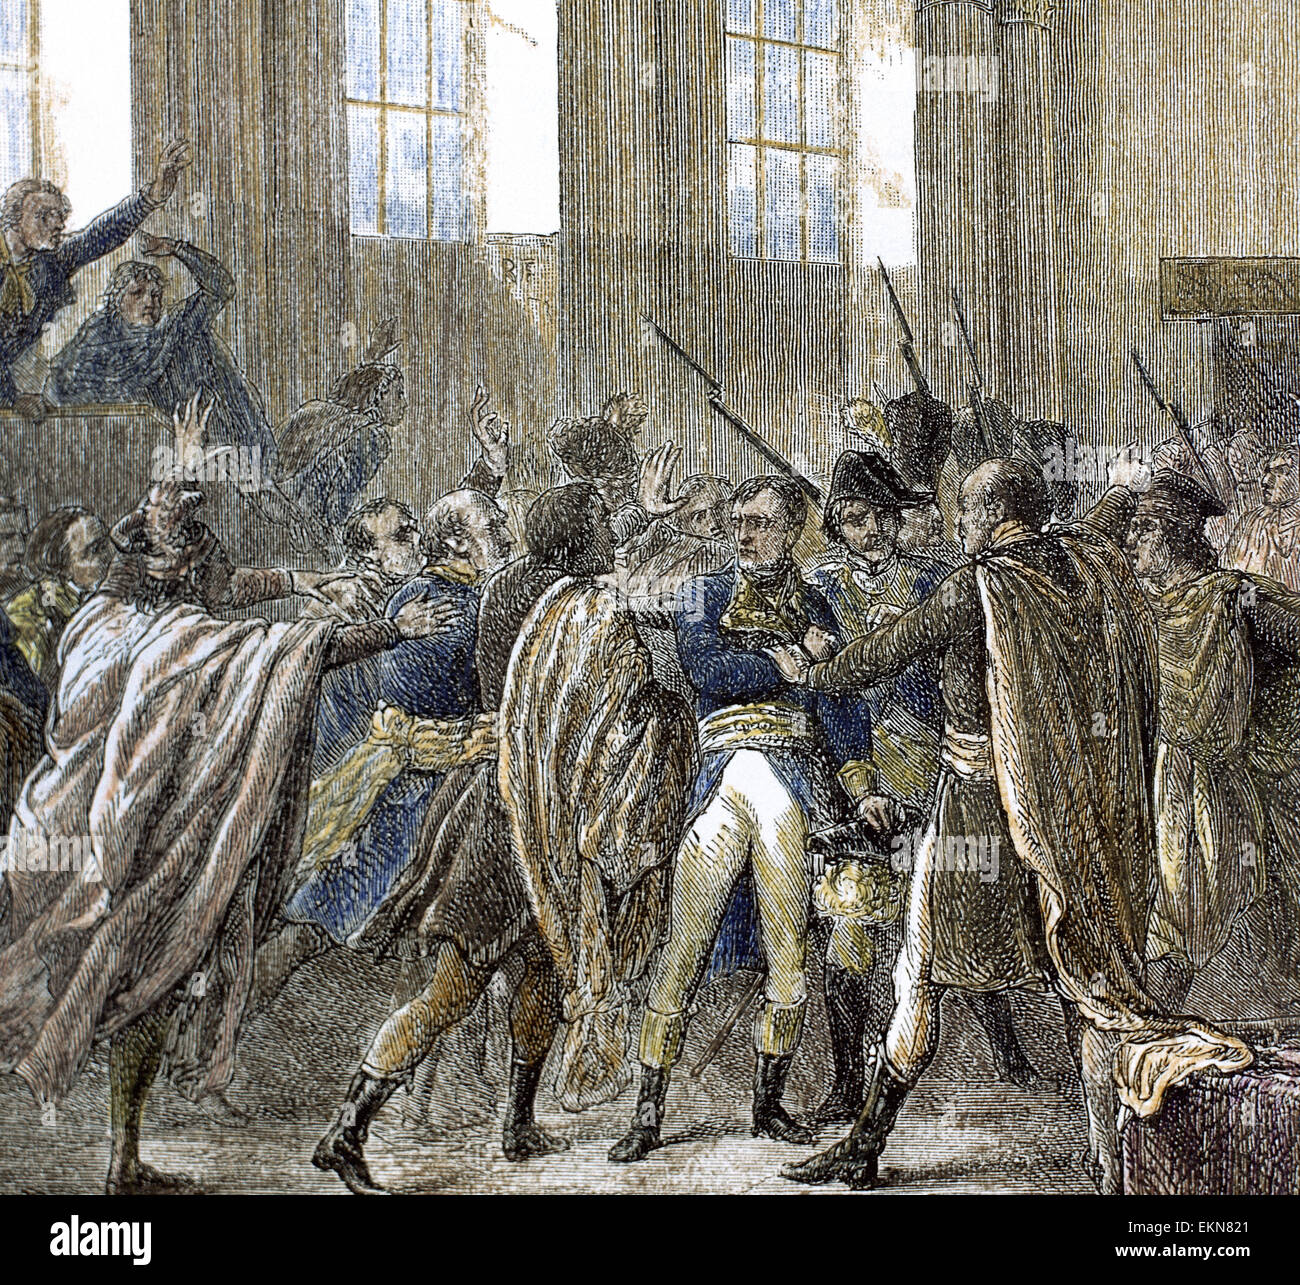 Napoleon Bonaparte (1769-1821) in the Council of Five Hundred, the lower house of the legislature of France during - Stock Image